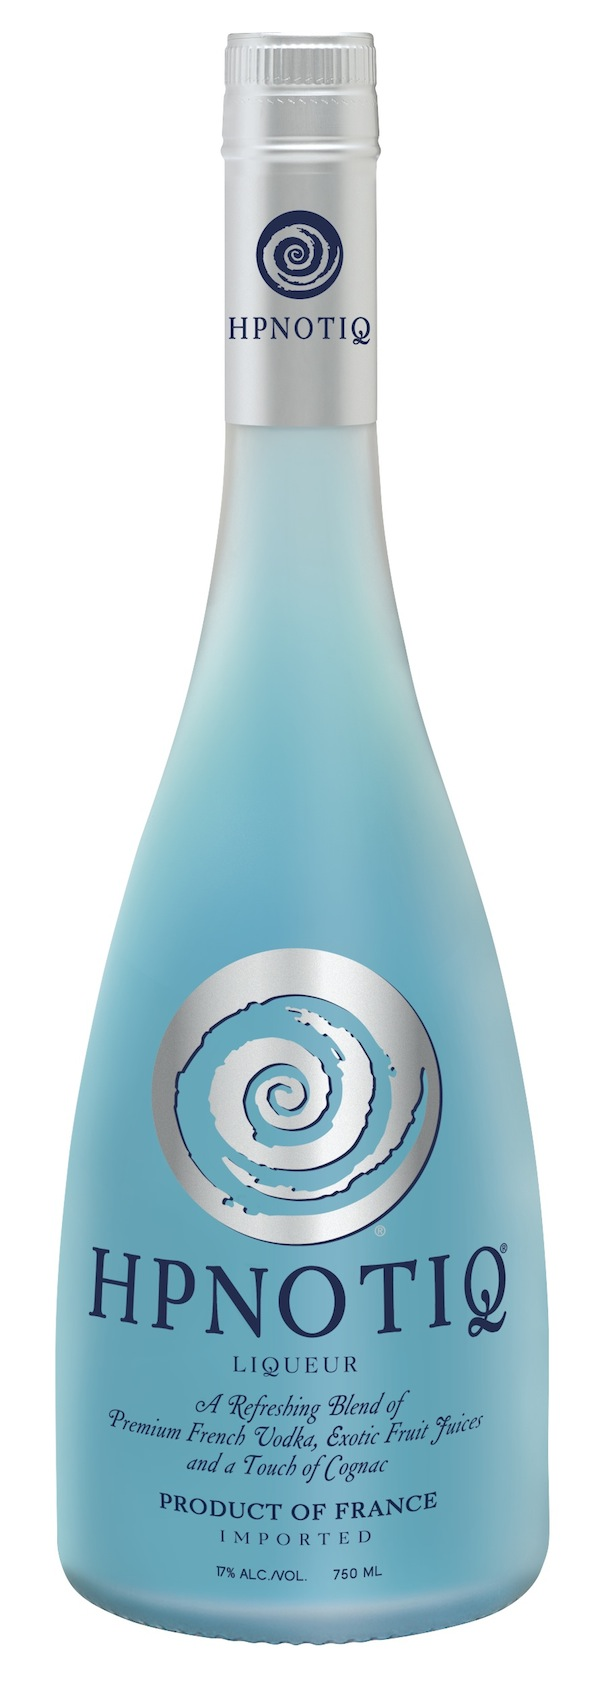 Hpnotiq GlamLouder Bling It On Bottle Image Bling It On! With Hpnotiq: Submit Your Glammest Nails For A Chance To Win